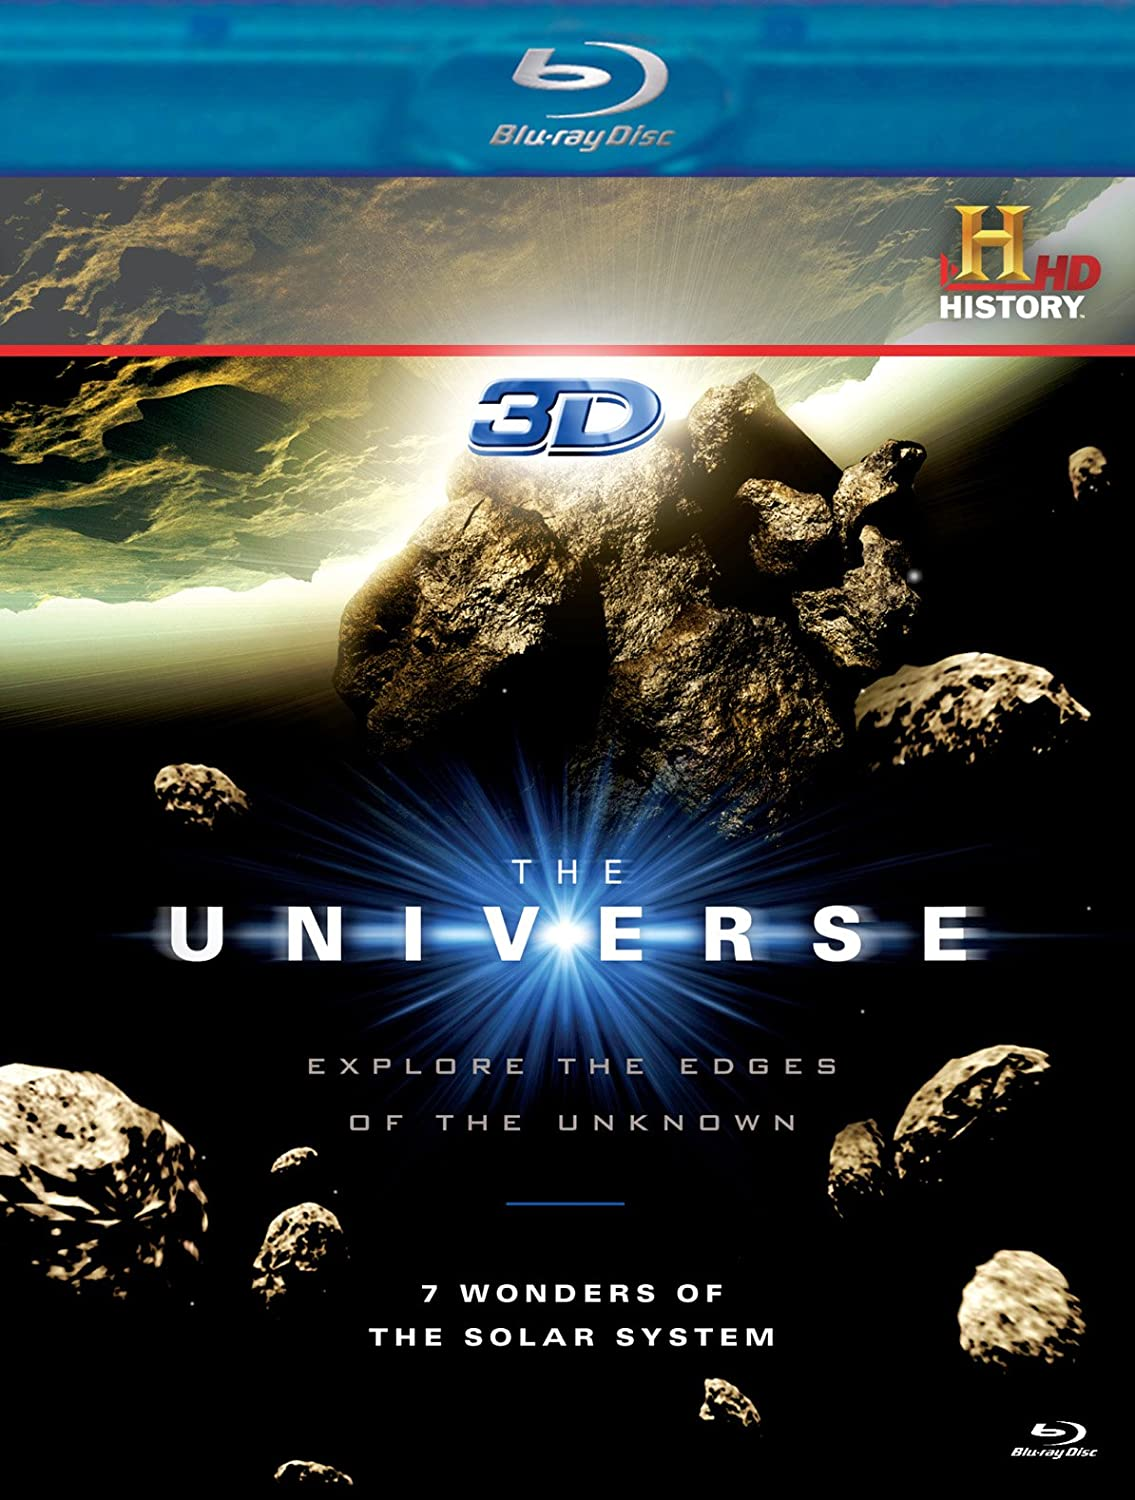 The Universe: How the Solar System Was Made 2011 mHD BluRay DD5.1 x264-TRiM screenshots